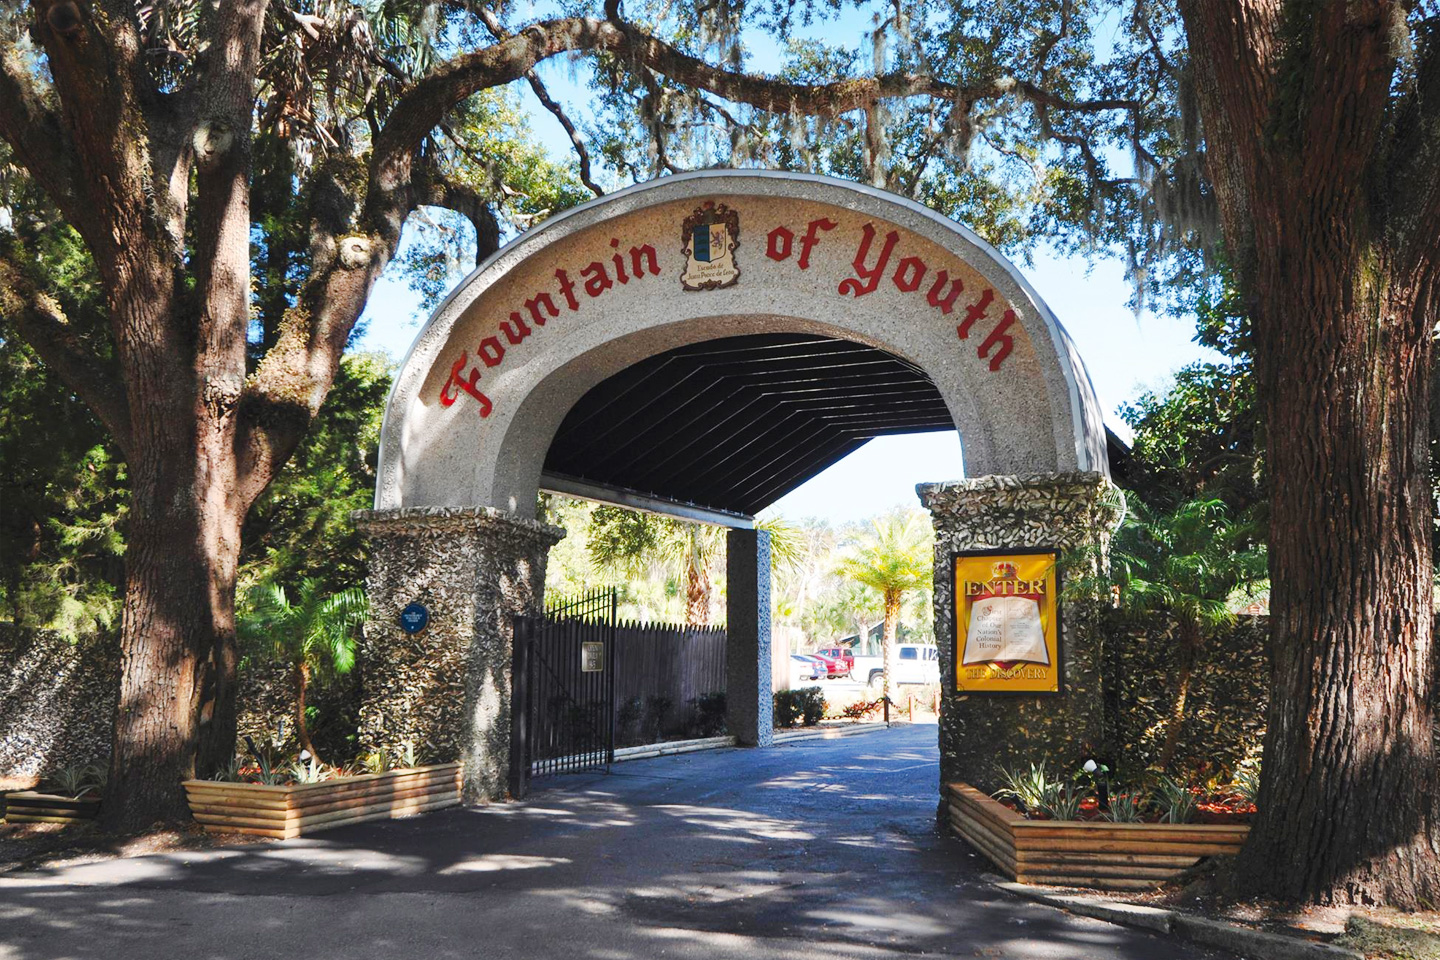 List of Fun Things To Do In St. Augustine, Florida - Ponce de Leon's Fountain of Youth